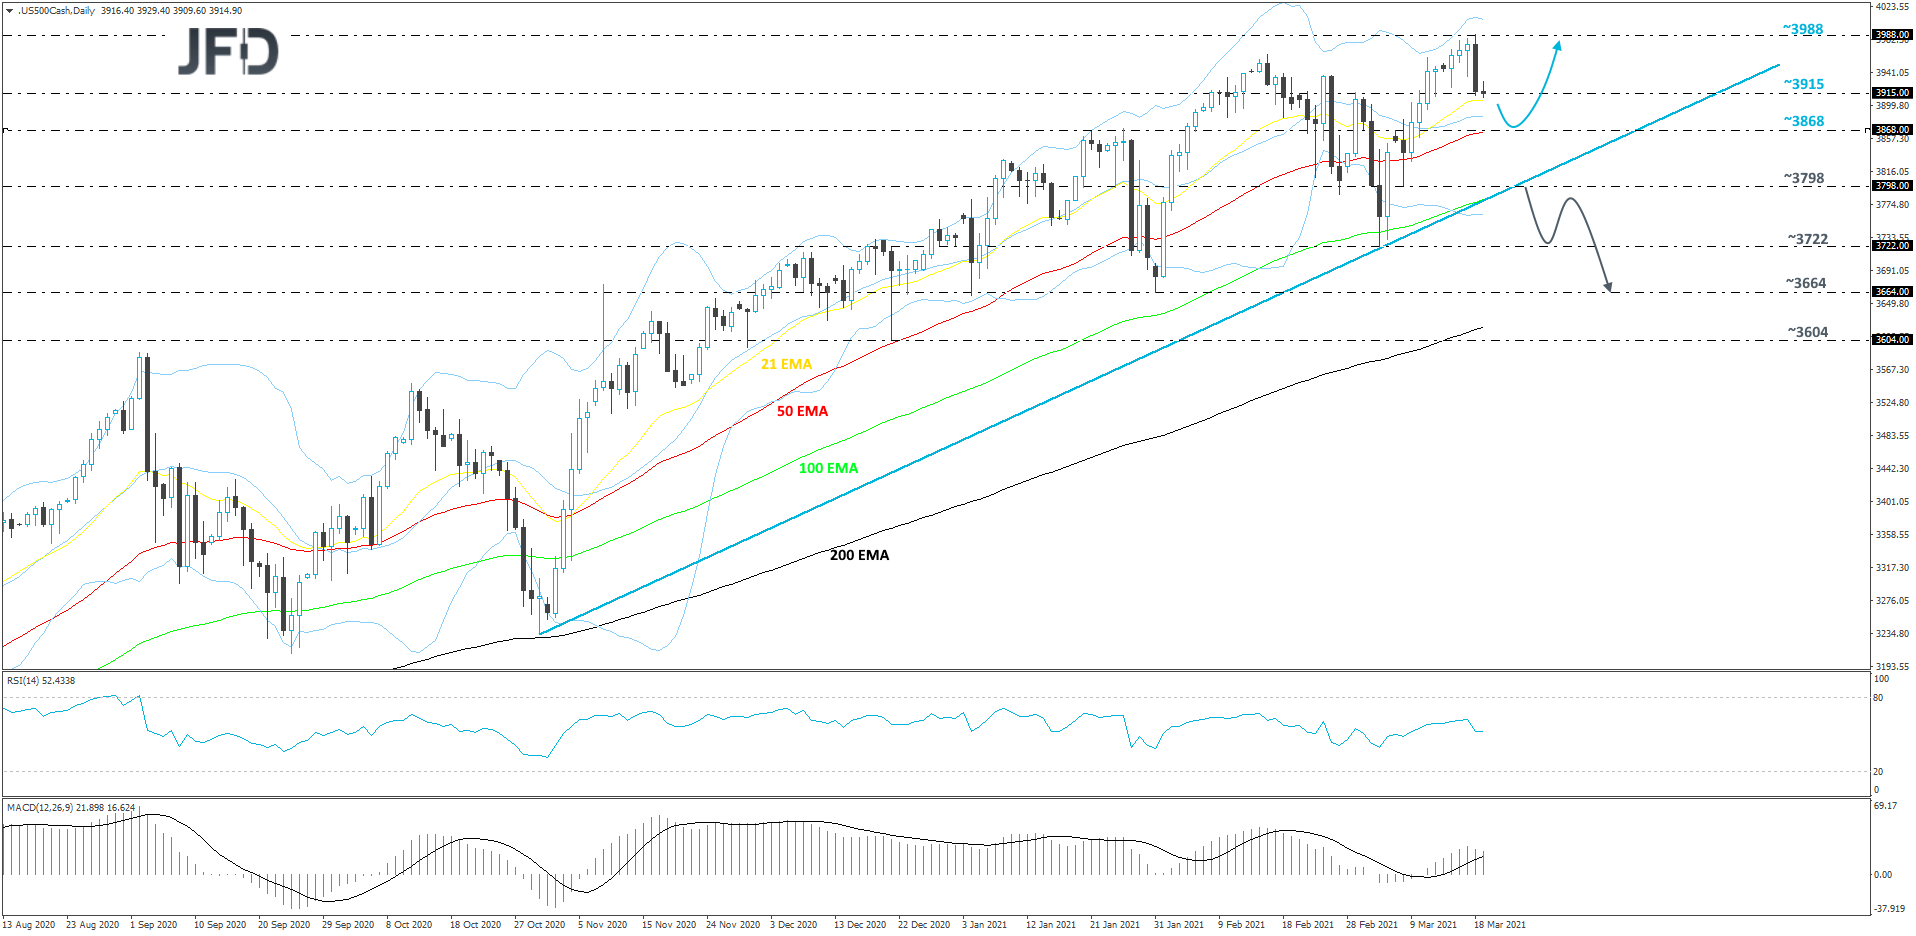 S&P 500 daily chart technical analysis